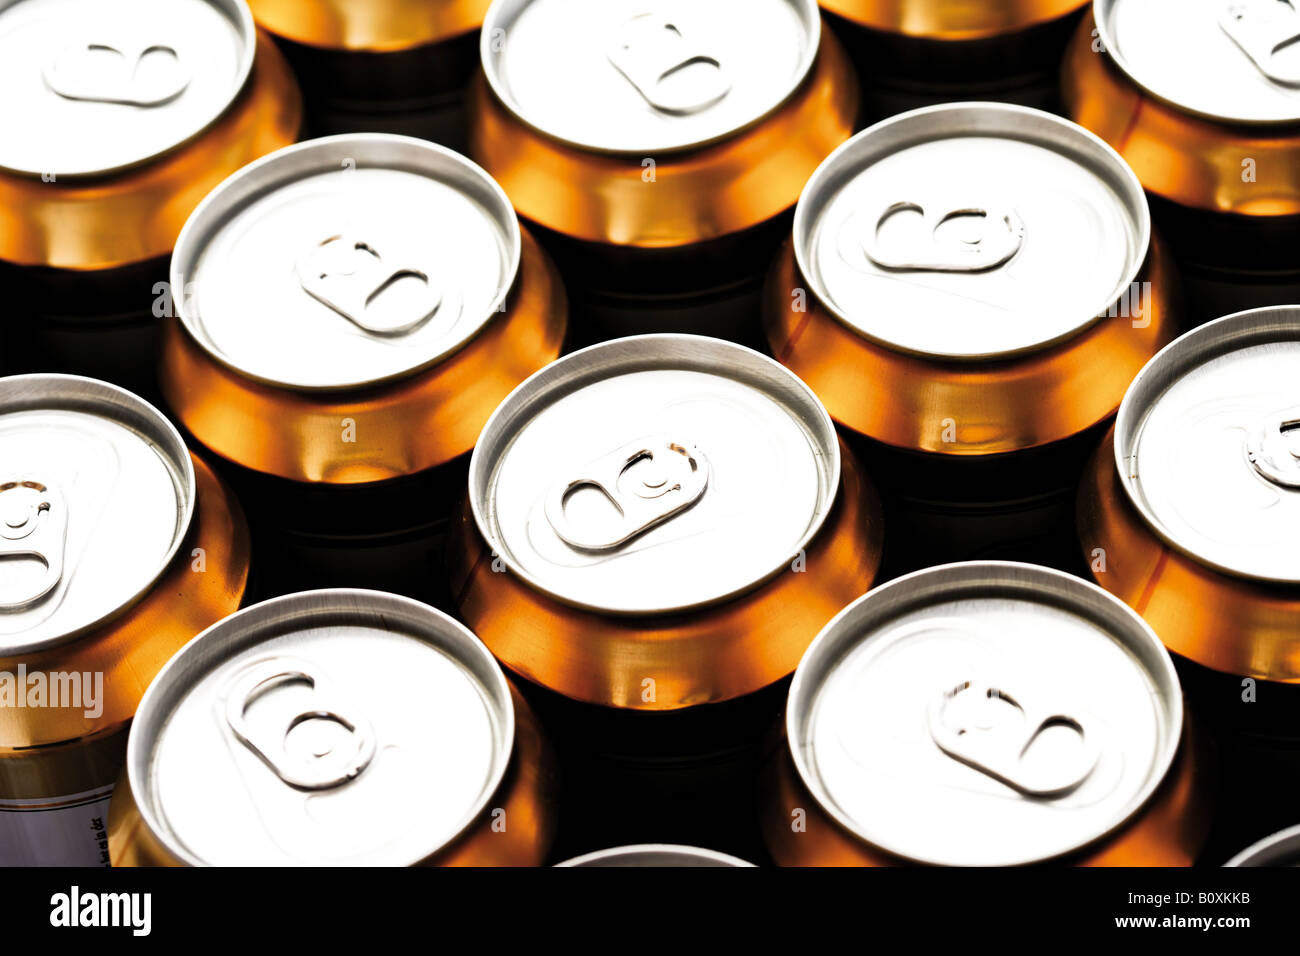 Beer cans, elevated view - Stock Image